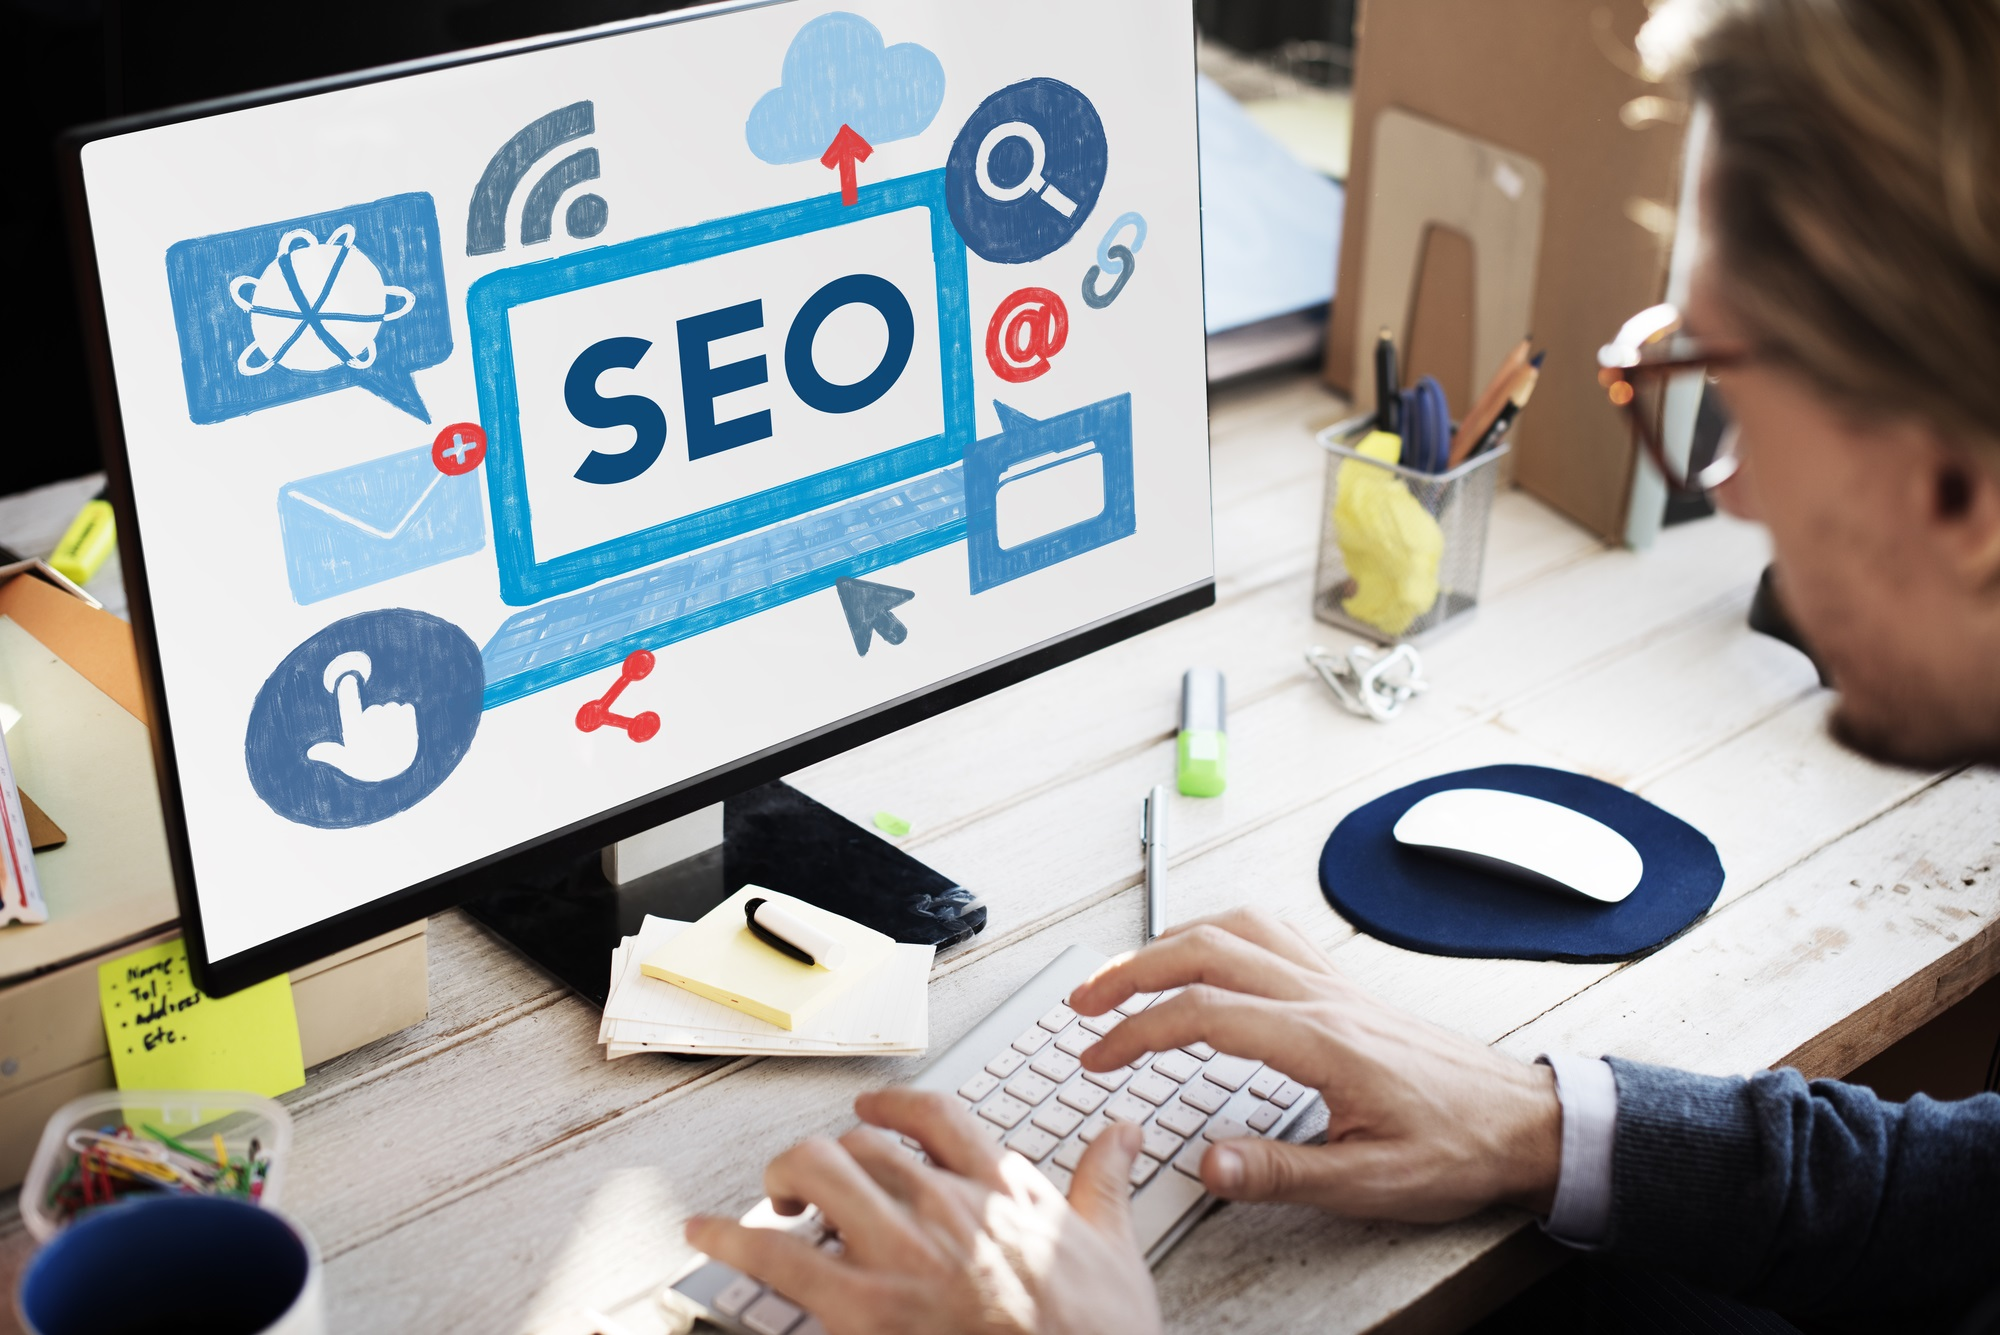 Buying Links: Is it Possible to Buy Backlinks? | FinSMEs